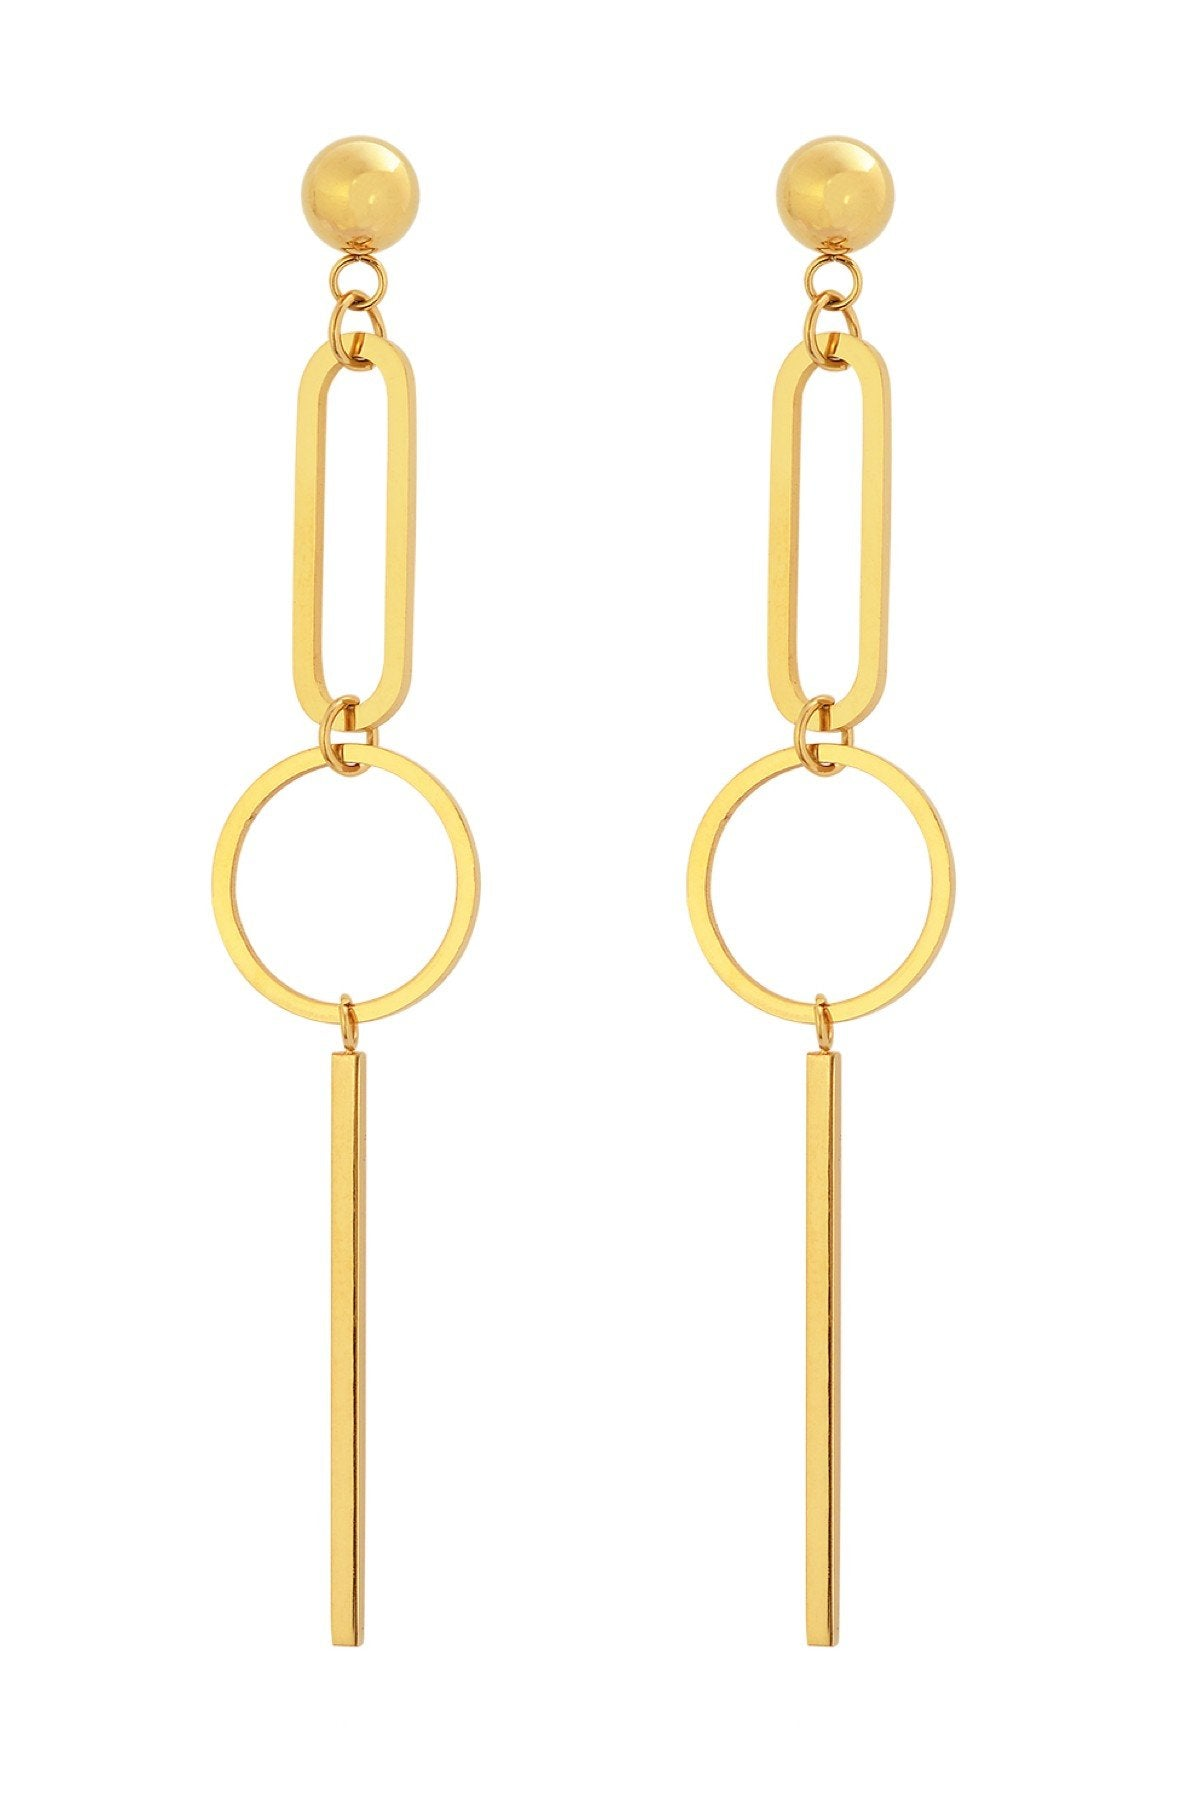 18K Gold Geometric Long Earrings